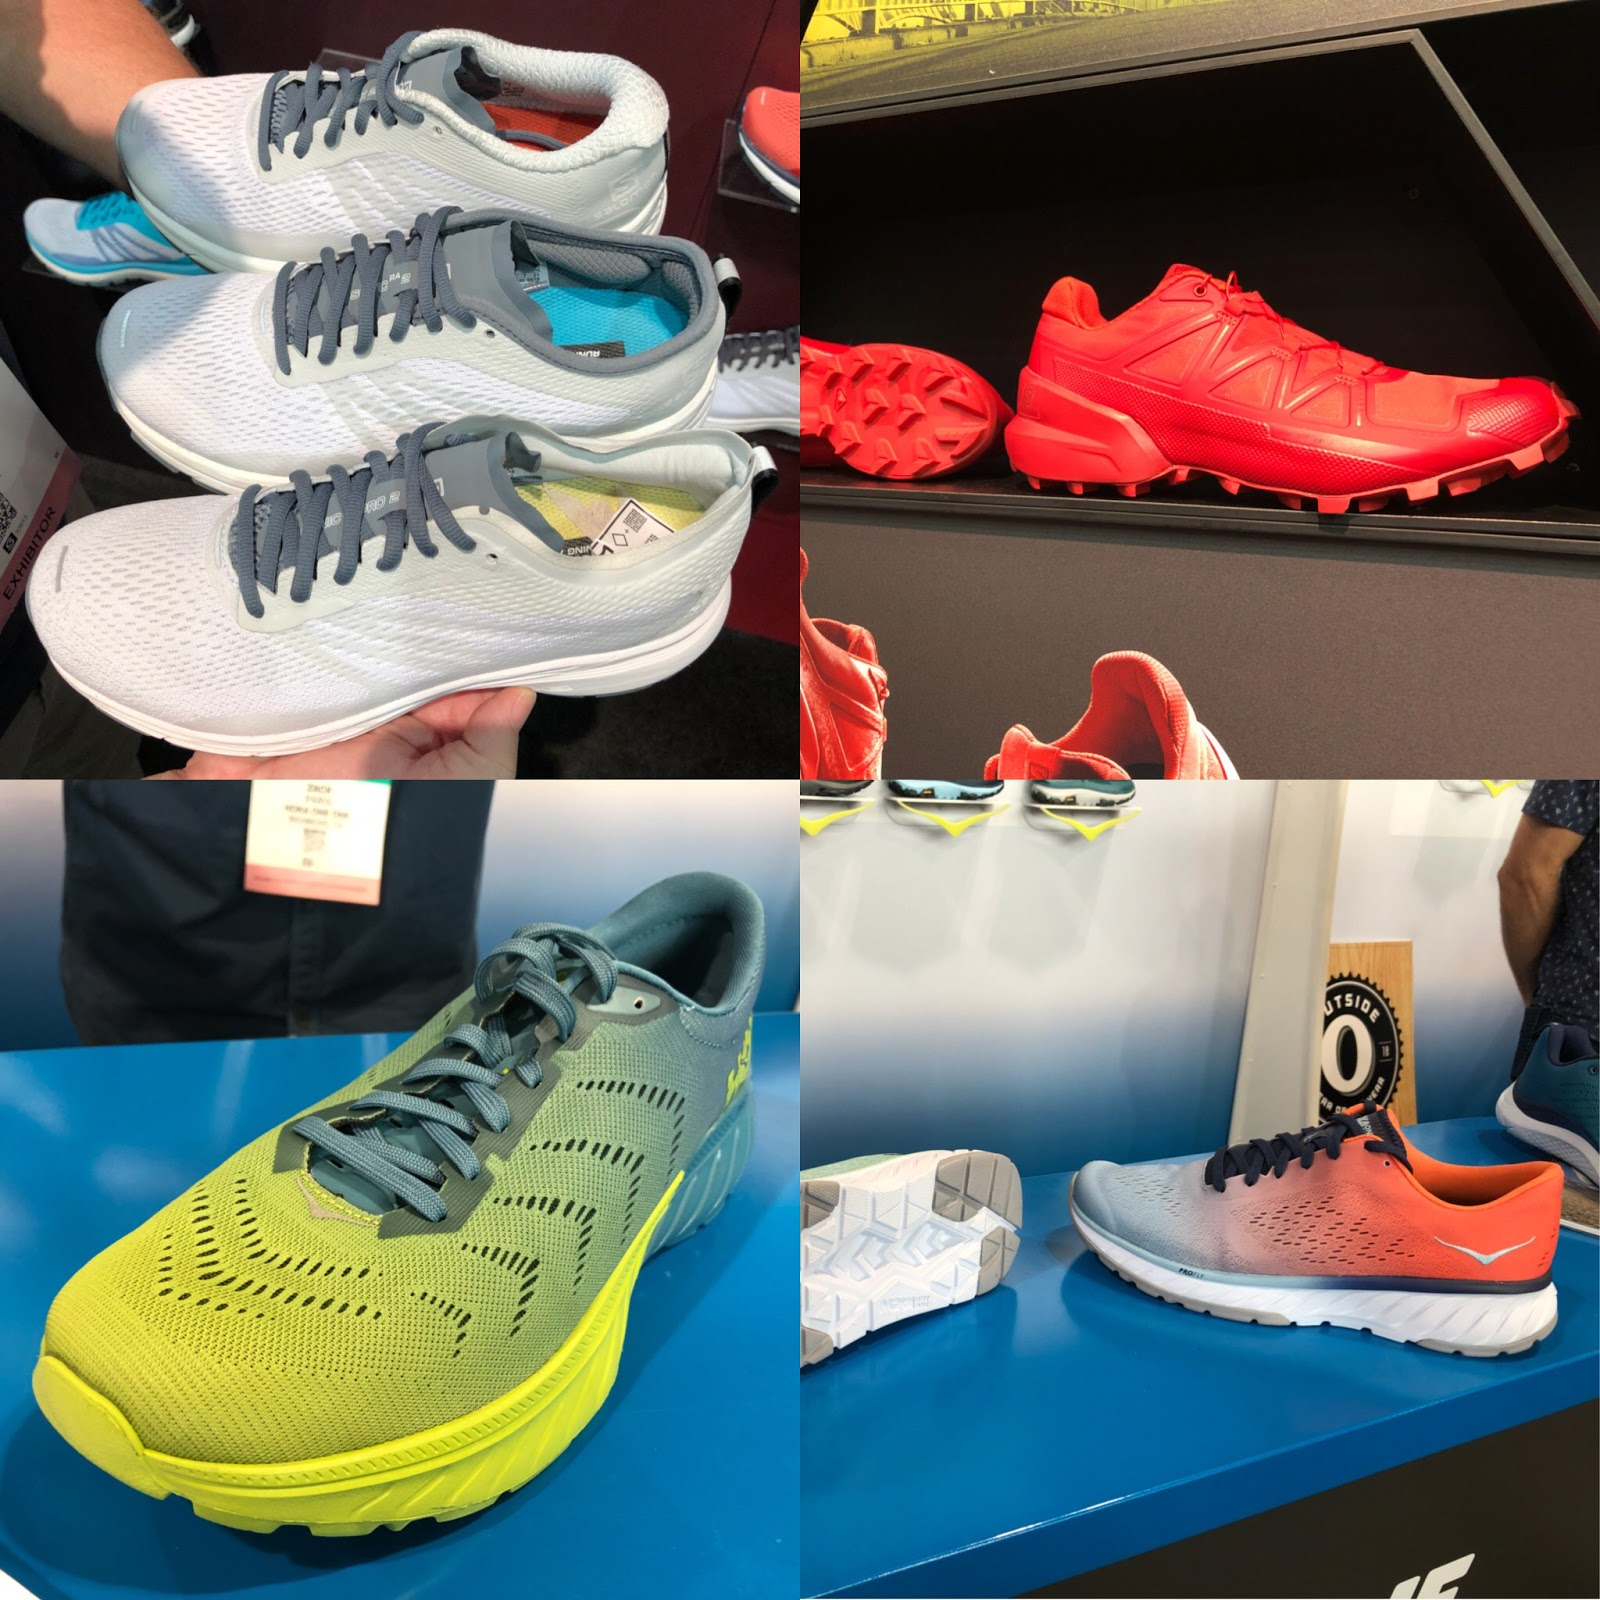 171f106e0bd5 2019 Initial Video Previews and Introductions from Outdoor Retailer here.  Saucony